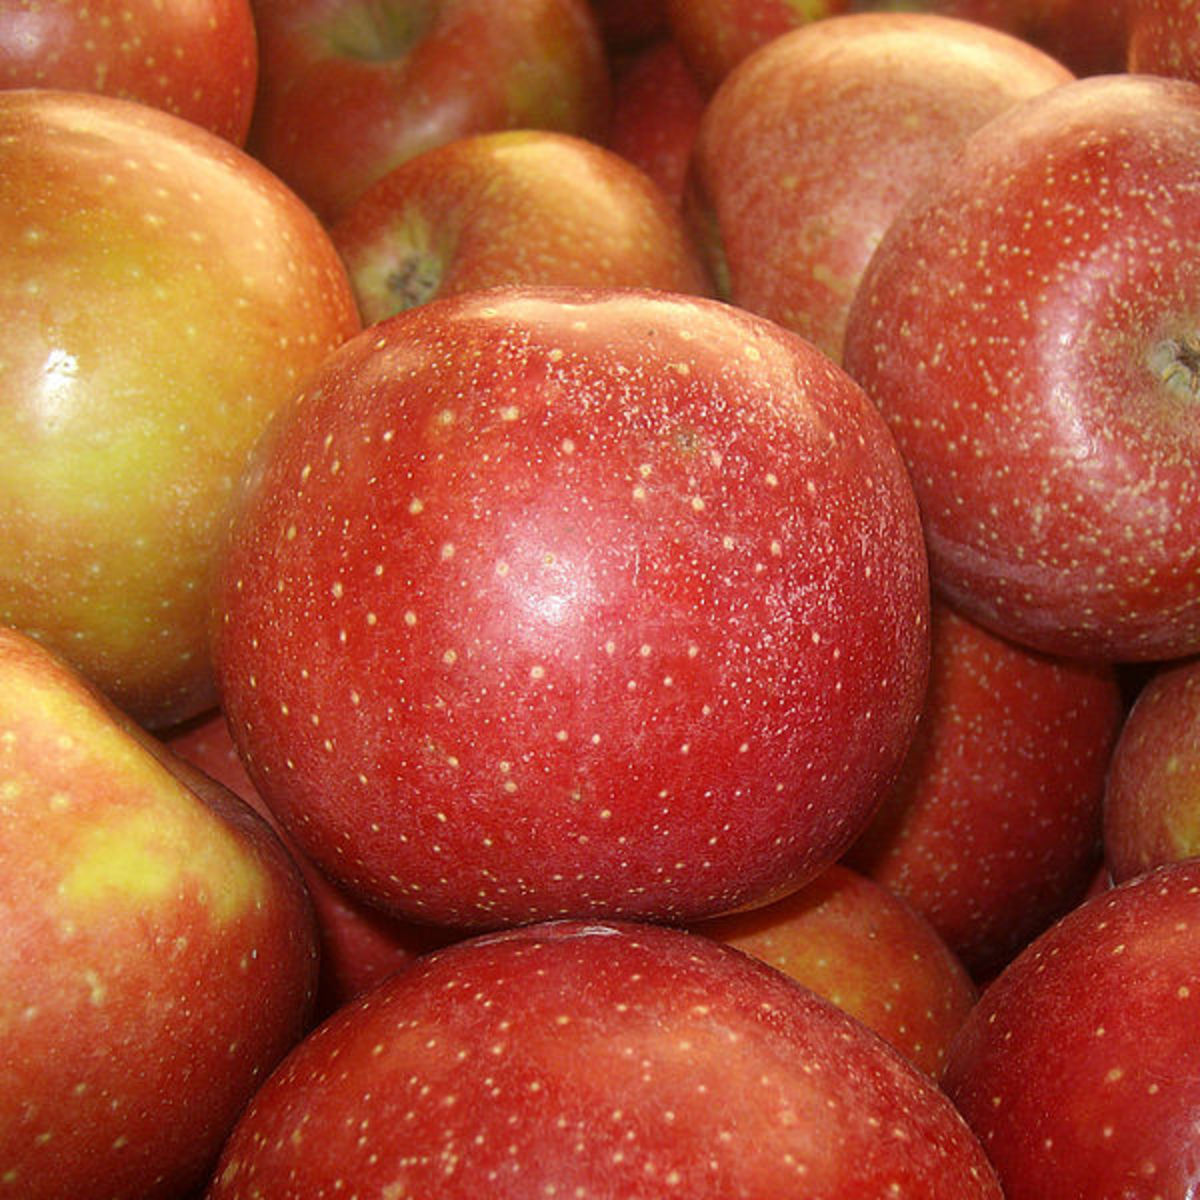 Health Benefits of Apples: A Healthy Heart and Weight Loss